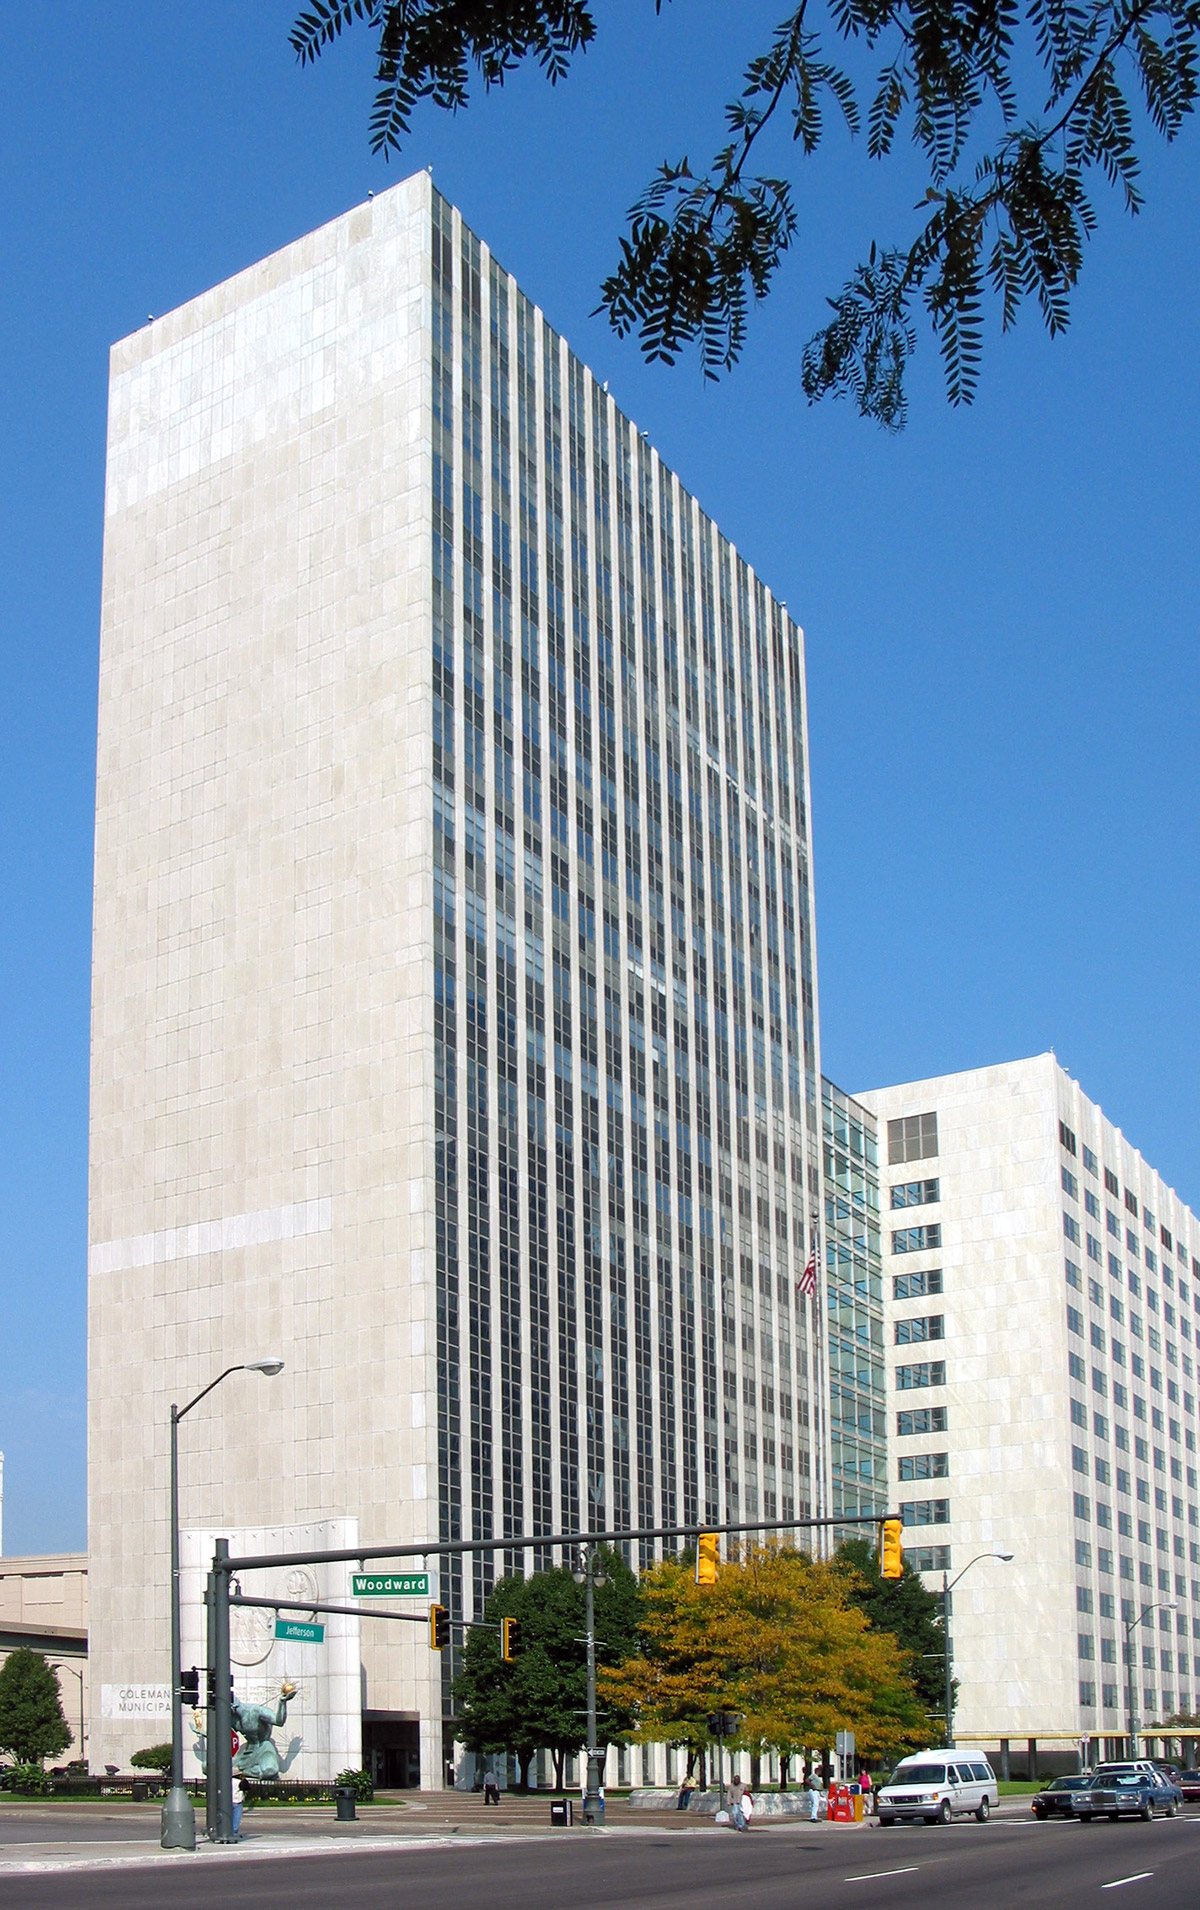 Coleman A. Young Municipal Building